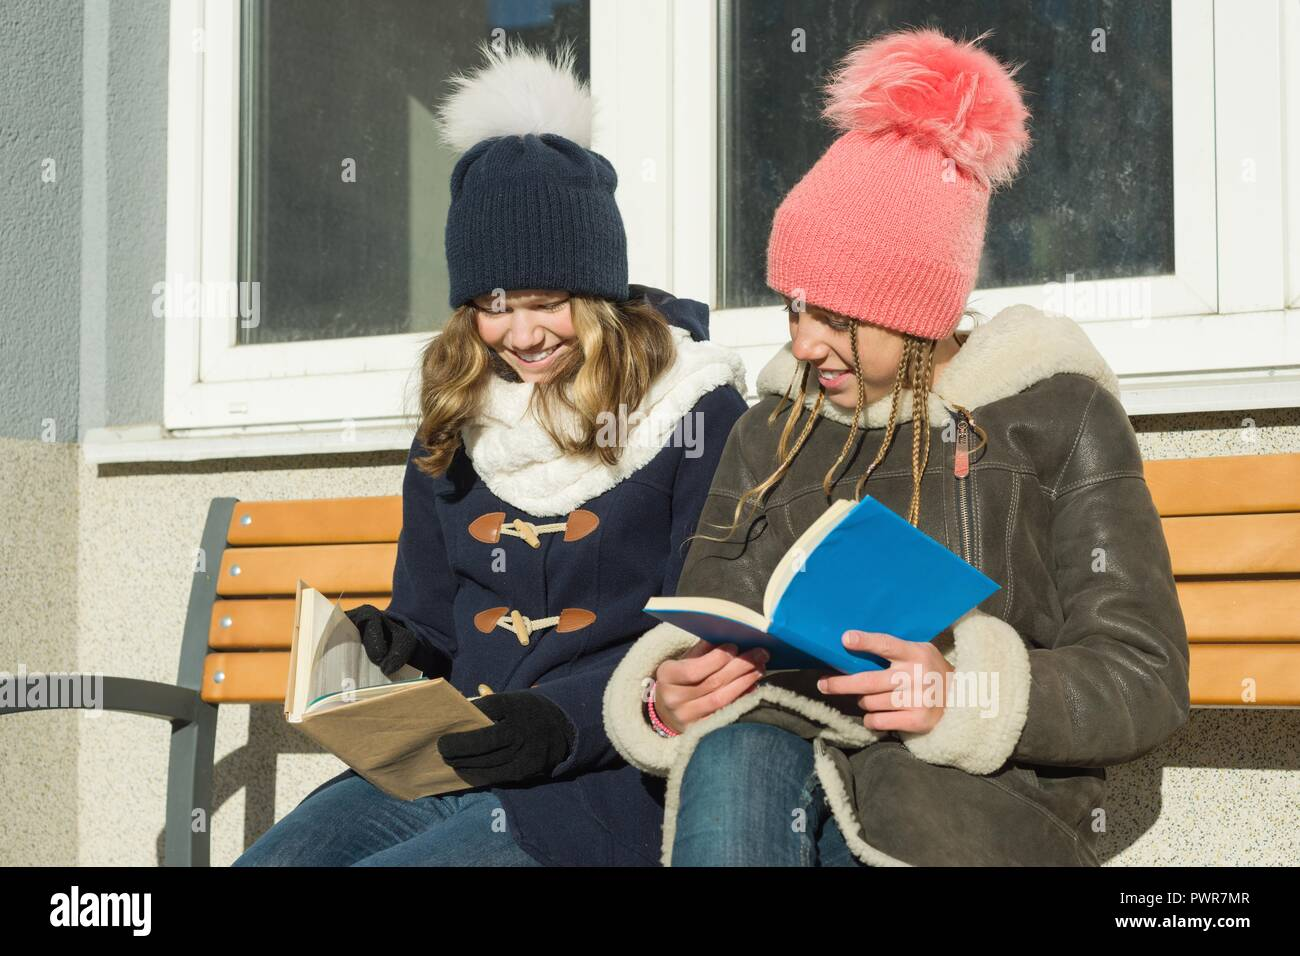 Winter portrait of cheerful young friends students on a bench with books, positive people and friendship concept Stock Photo